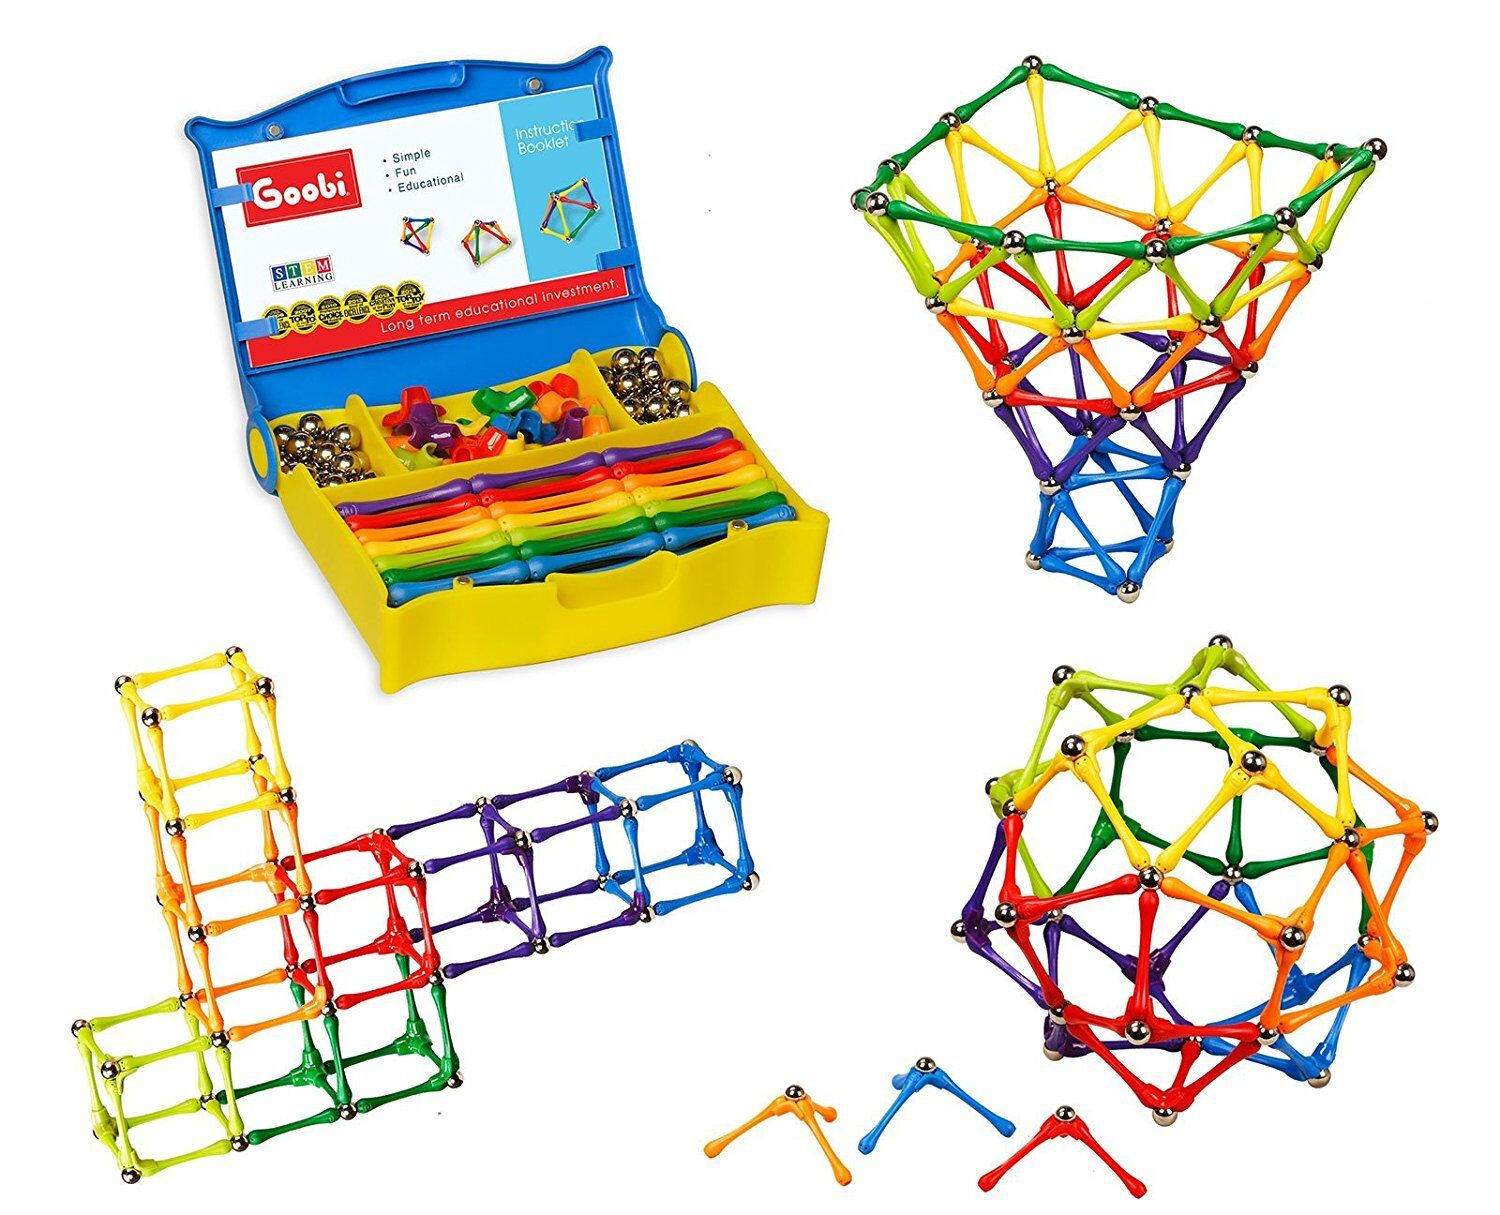 Goobi 180 Piece Construction Set with Instruction Booklet, STEM Learning Learning Learning 5b35b9